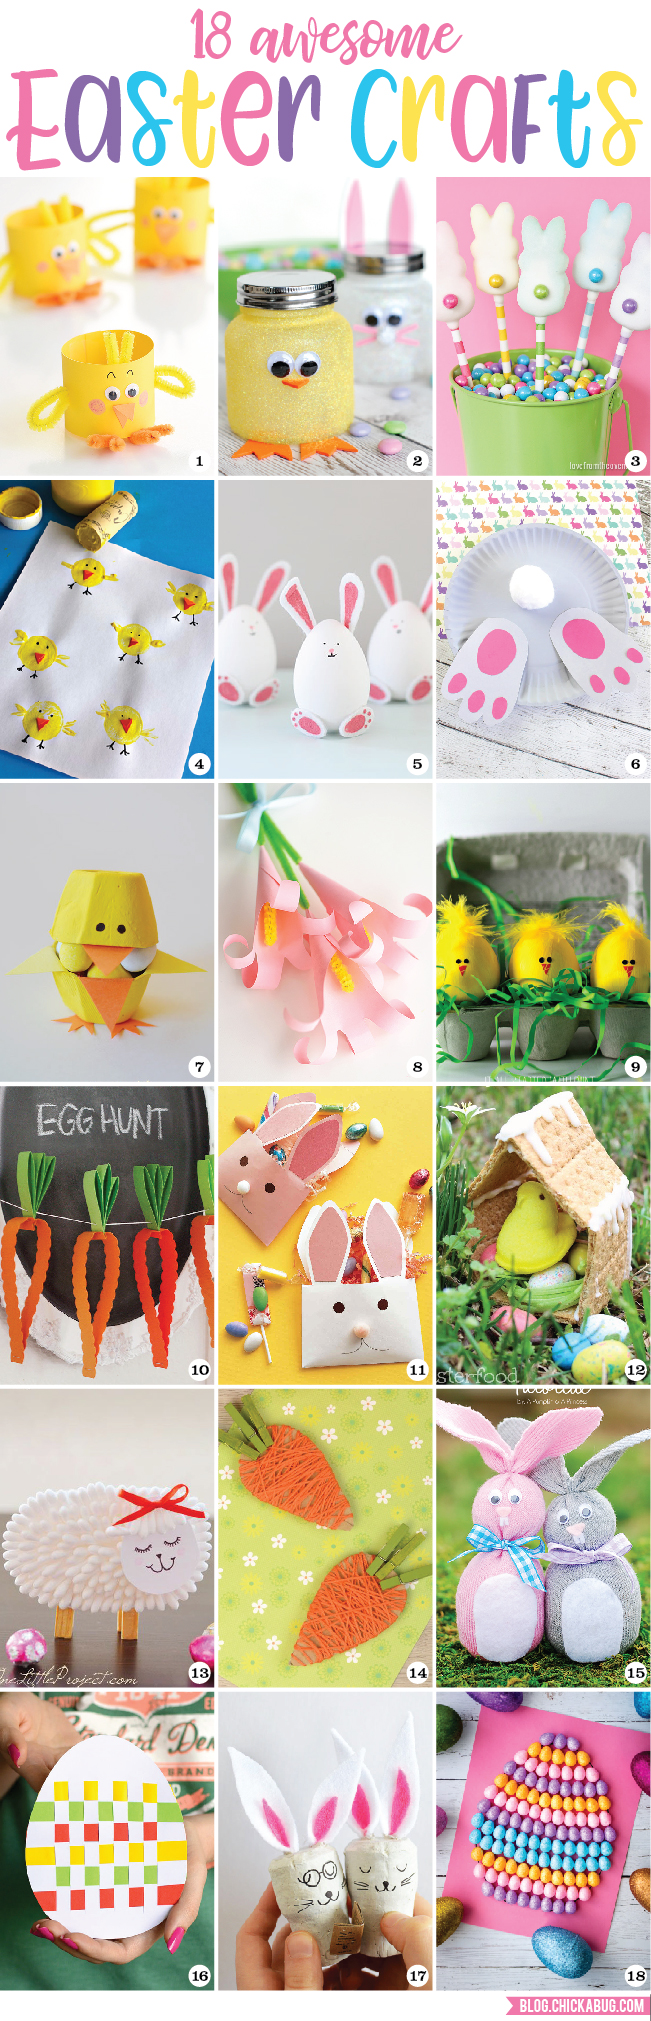 18 Awesome Easter Crafts